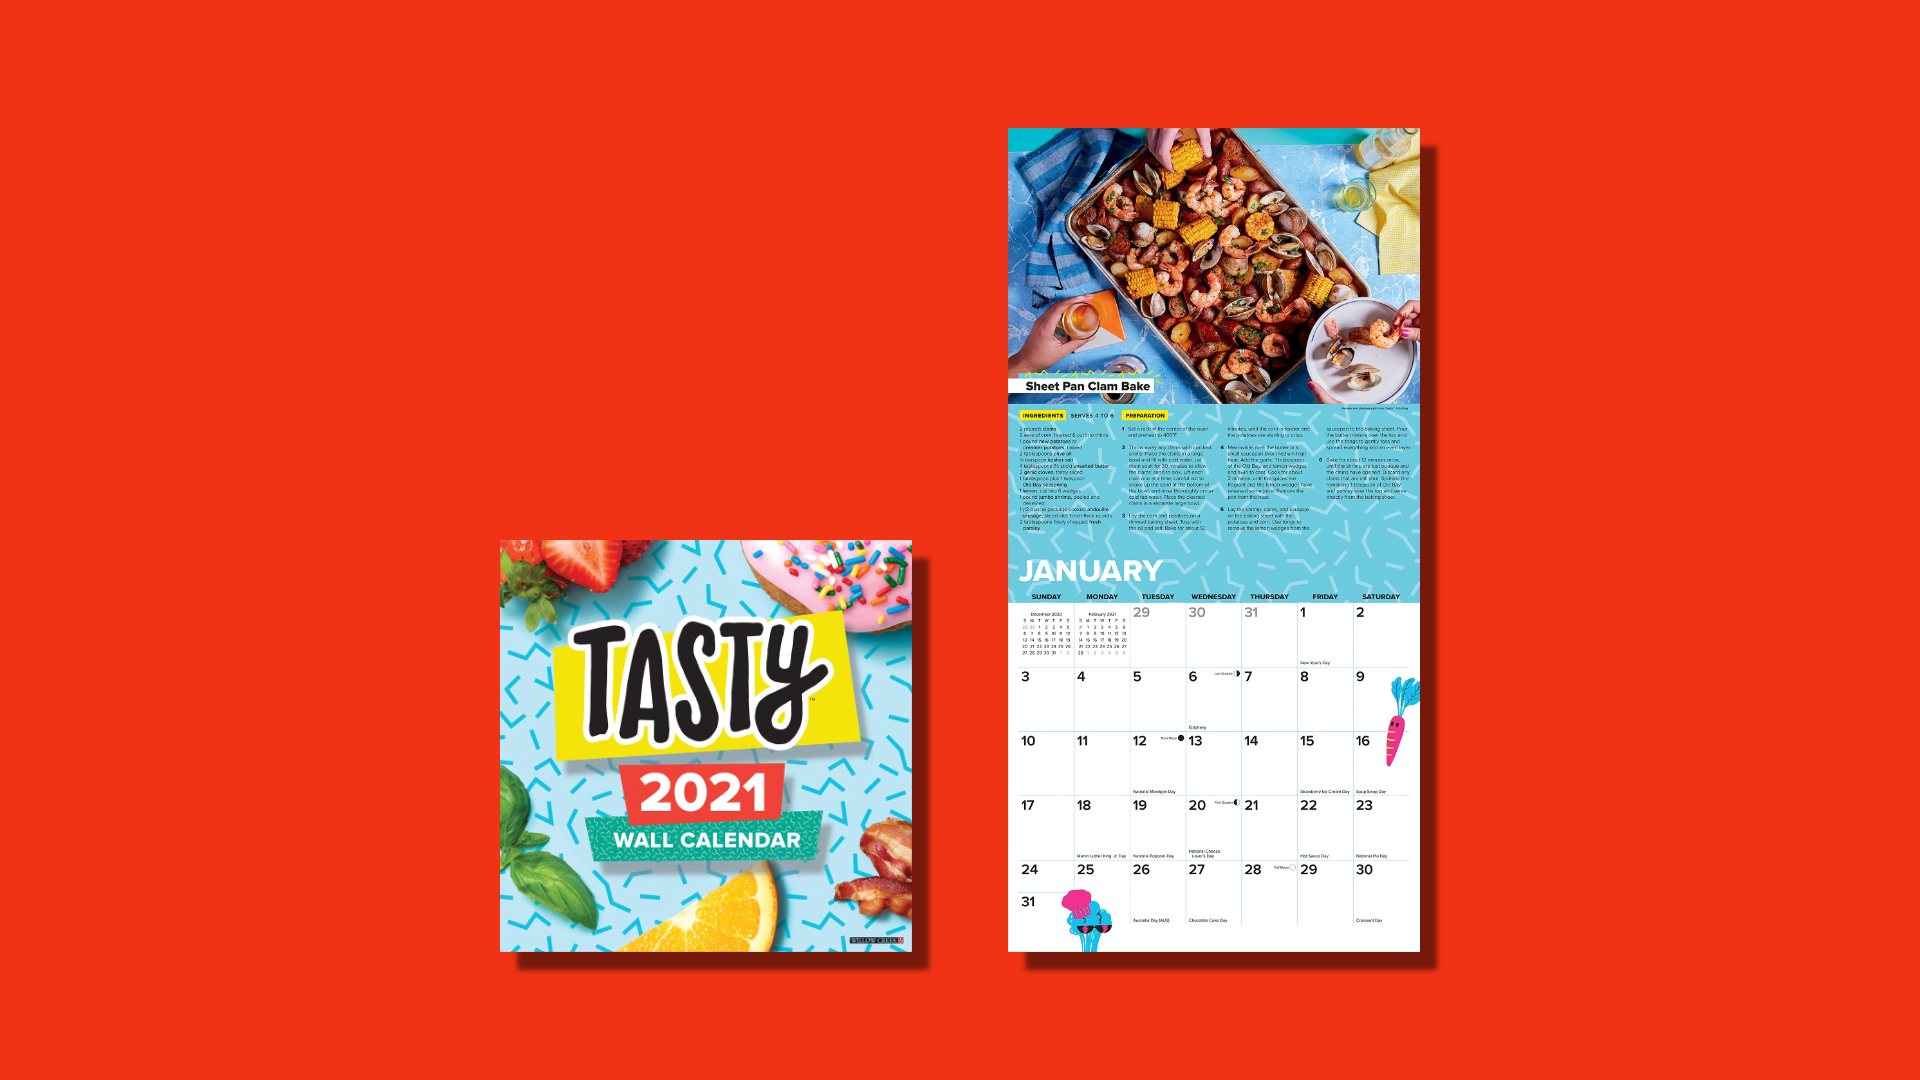 Blue calendar with food images on a red background.